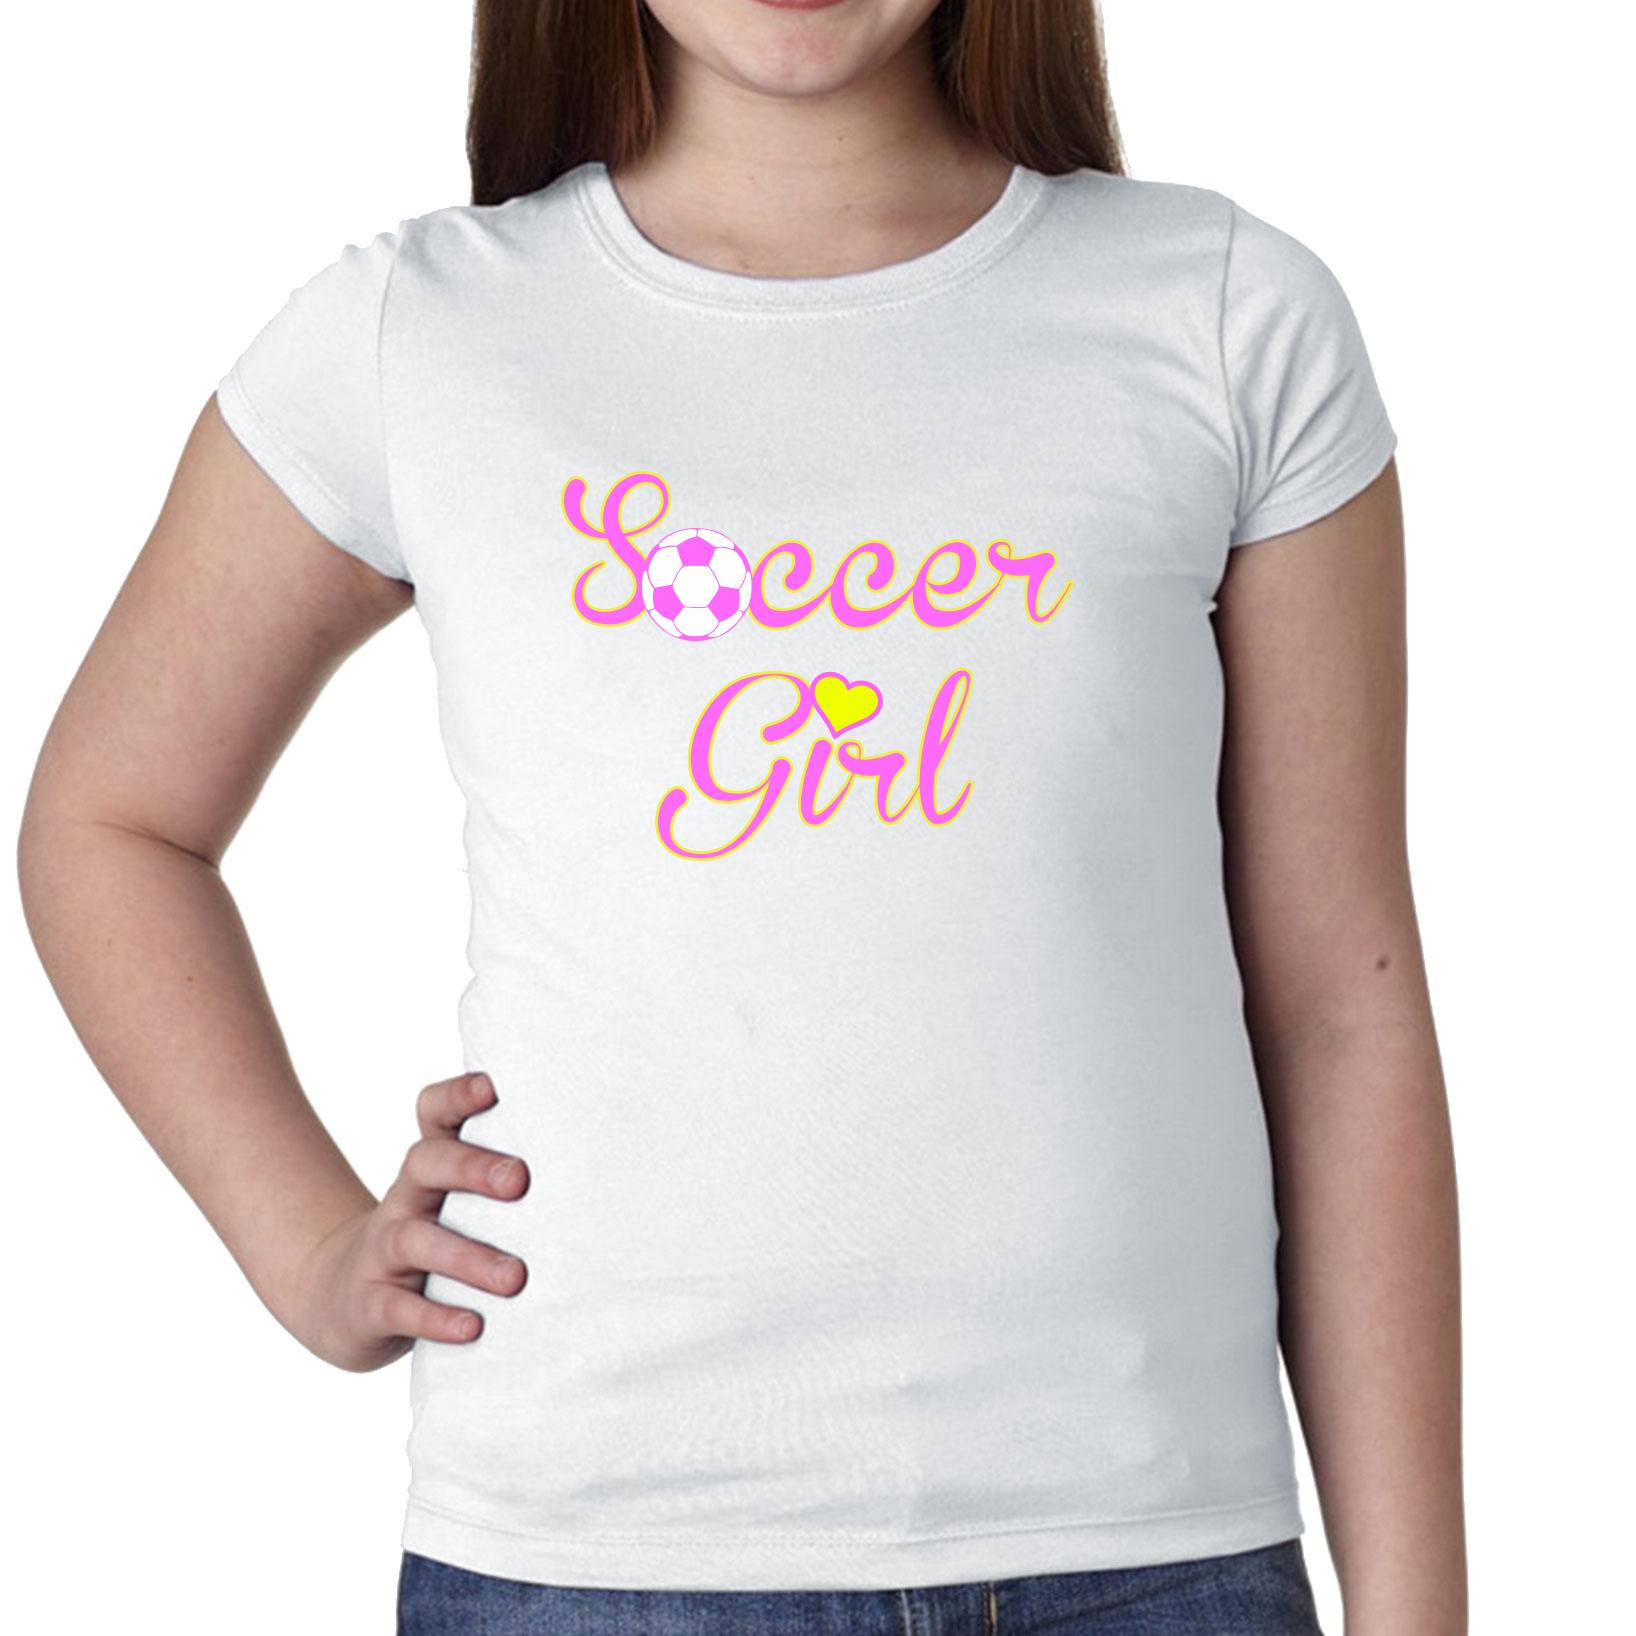 Soccer Girls - Cute Pink Cursive with Soccer Ball & Heart Girl's Cotton Youth T-Shirt